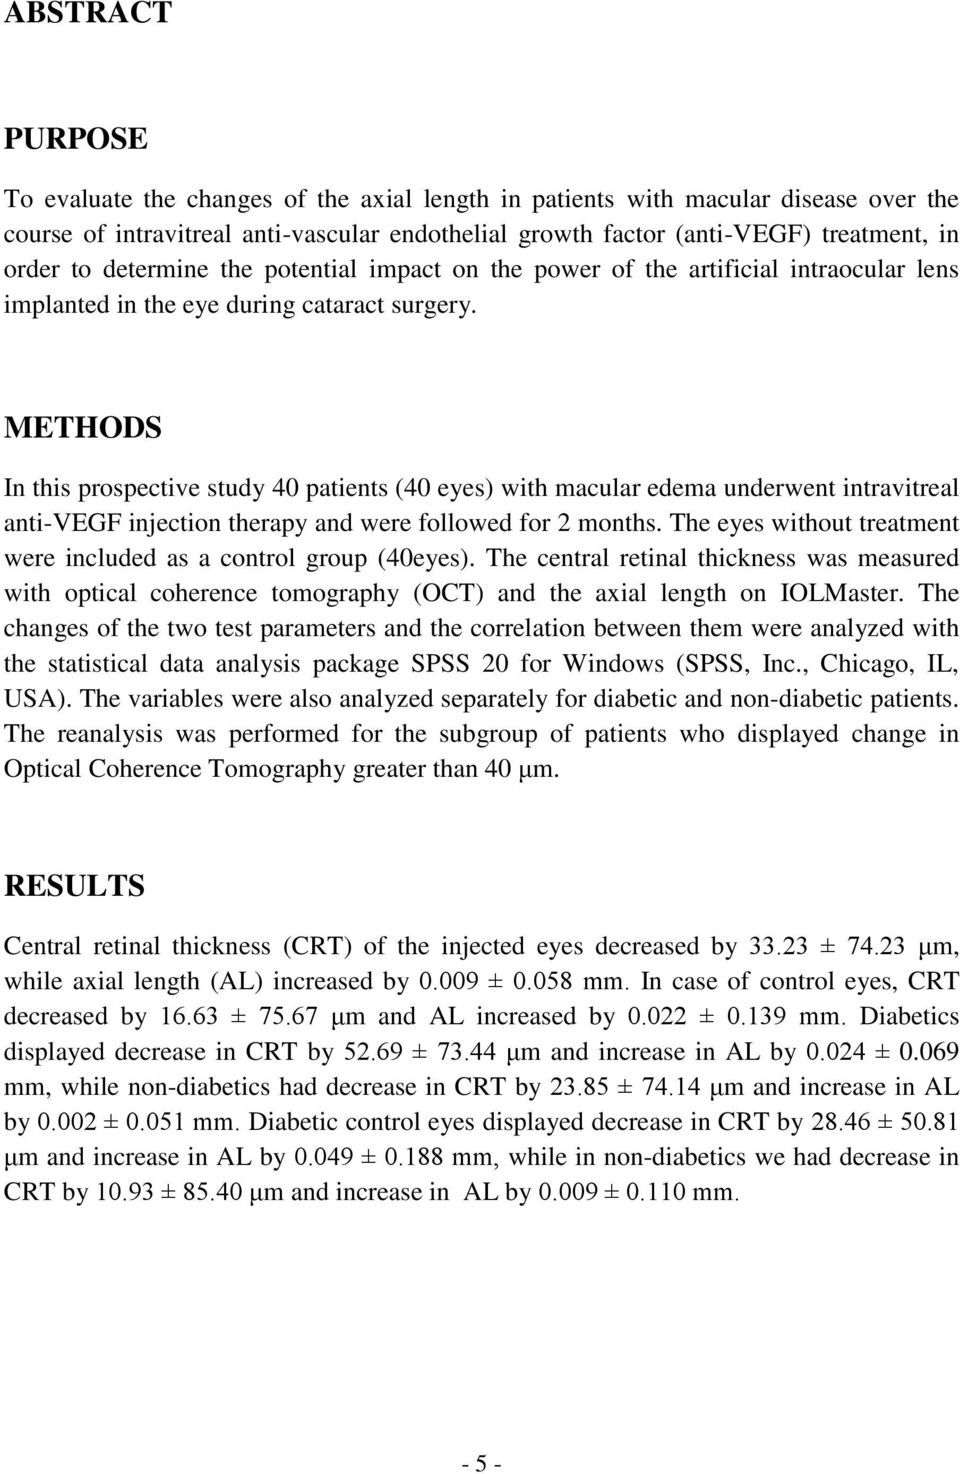 METHODS In this prospective study 40 patients (40 eyes) with macular edema underwent intravitreal anti-vegf injection therapy and were followed for 2 months.